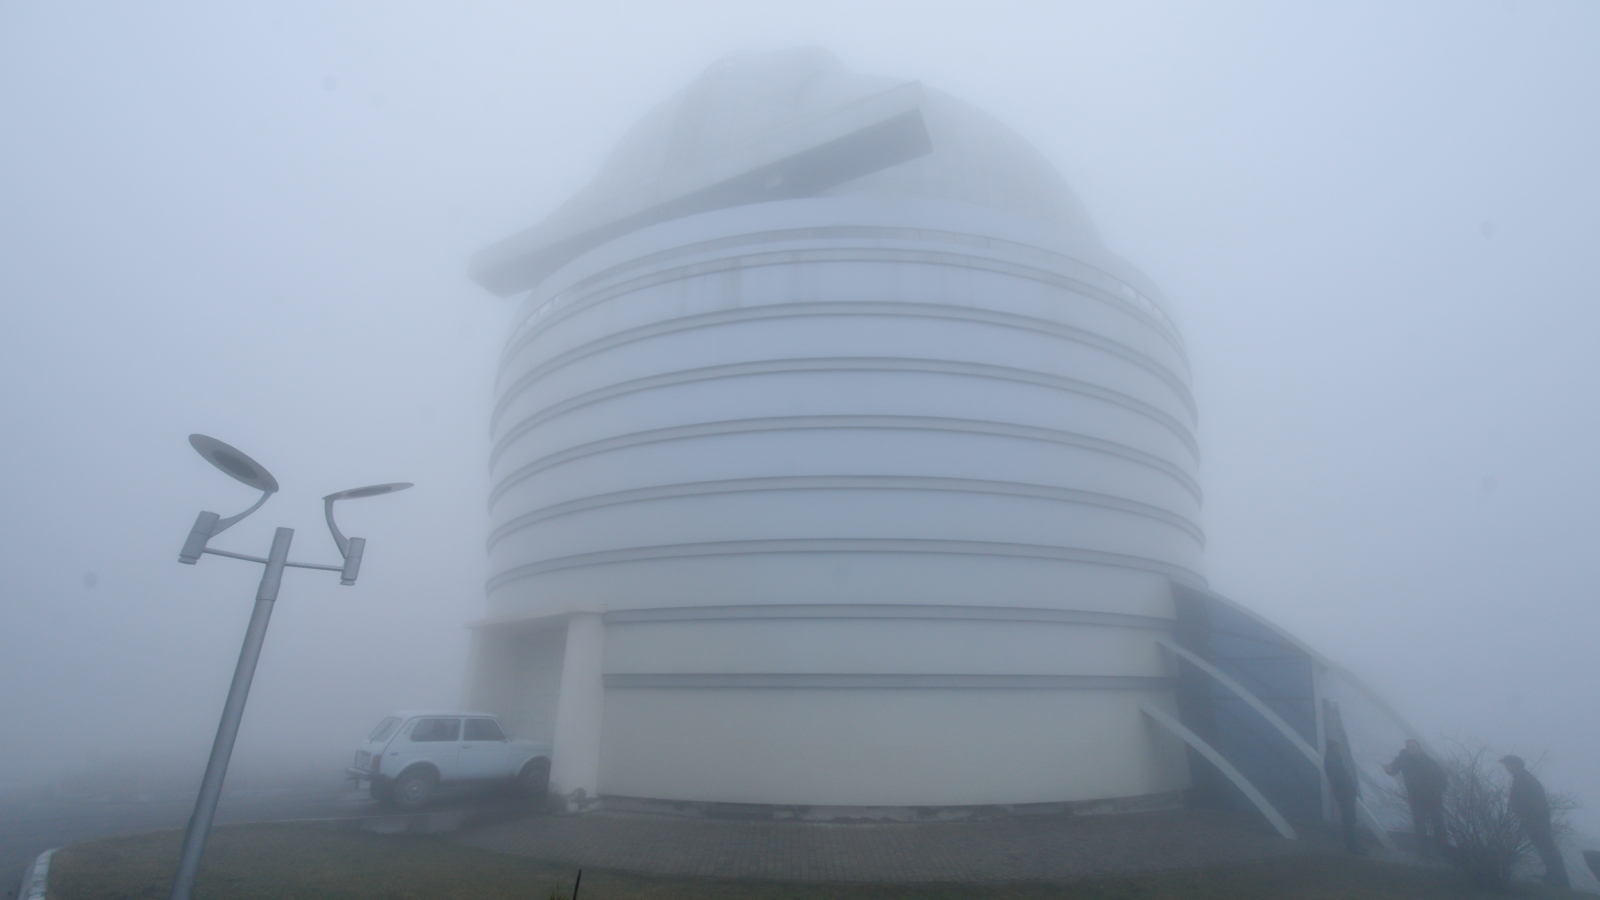 Shamakhi Astrophysical Observatory in Azerbaijan in February 2020